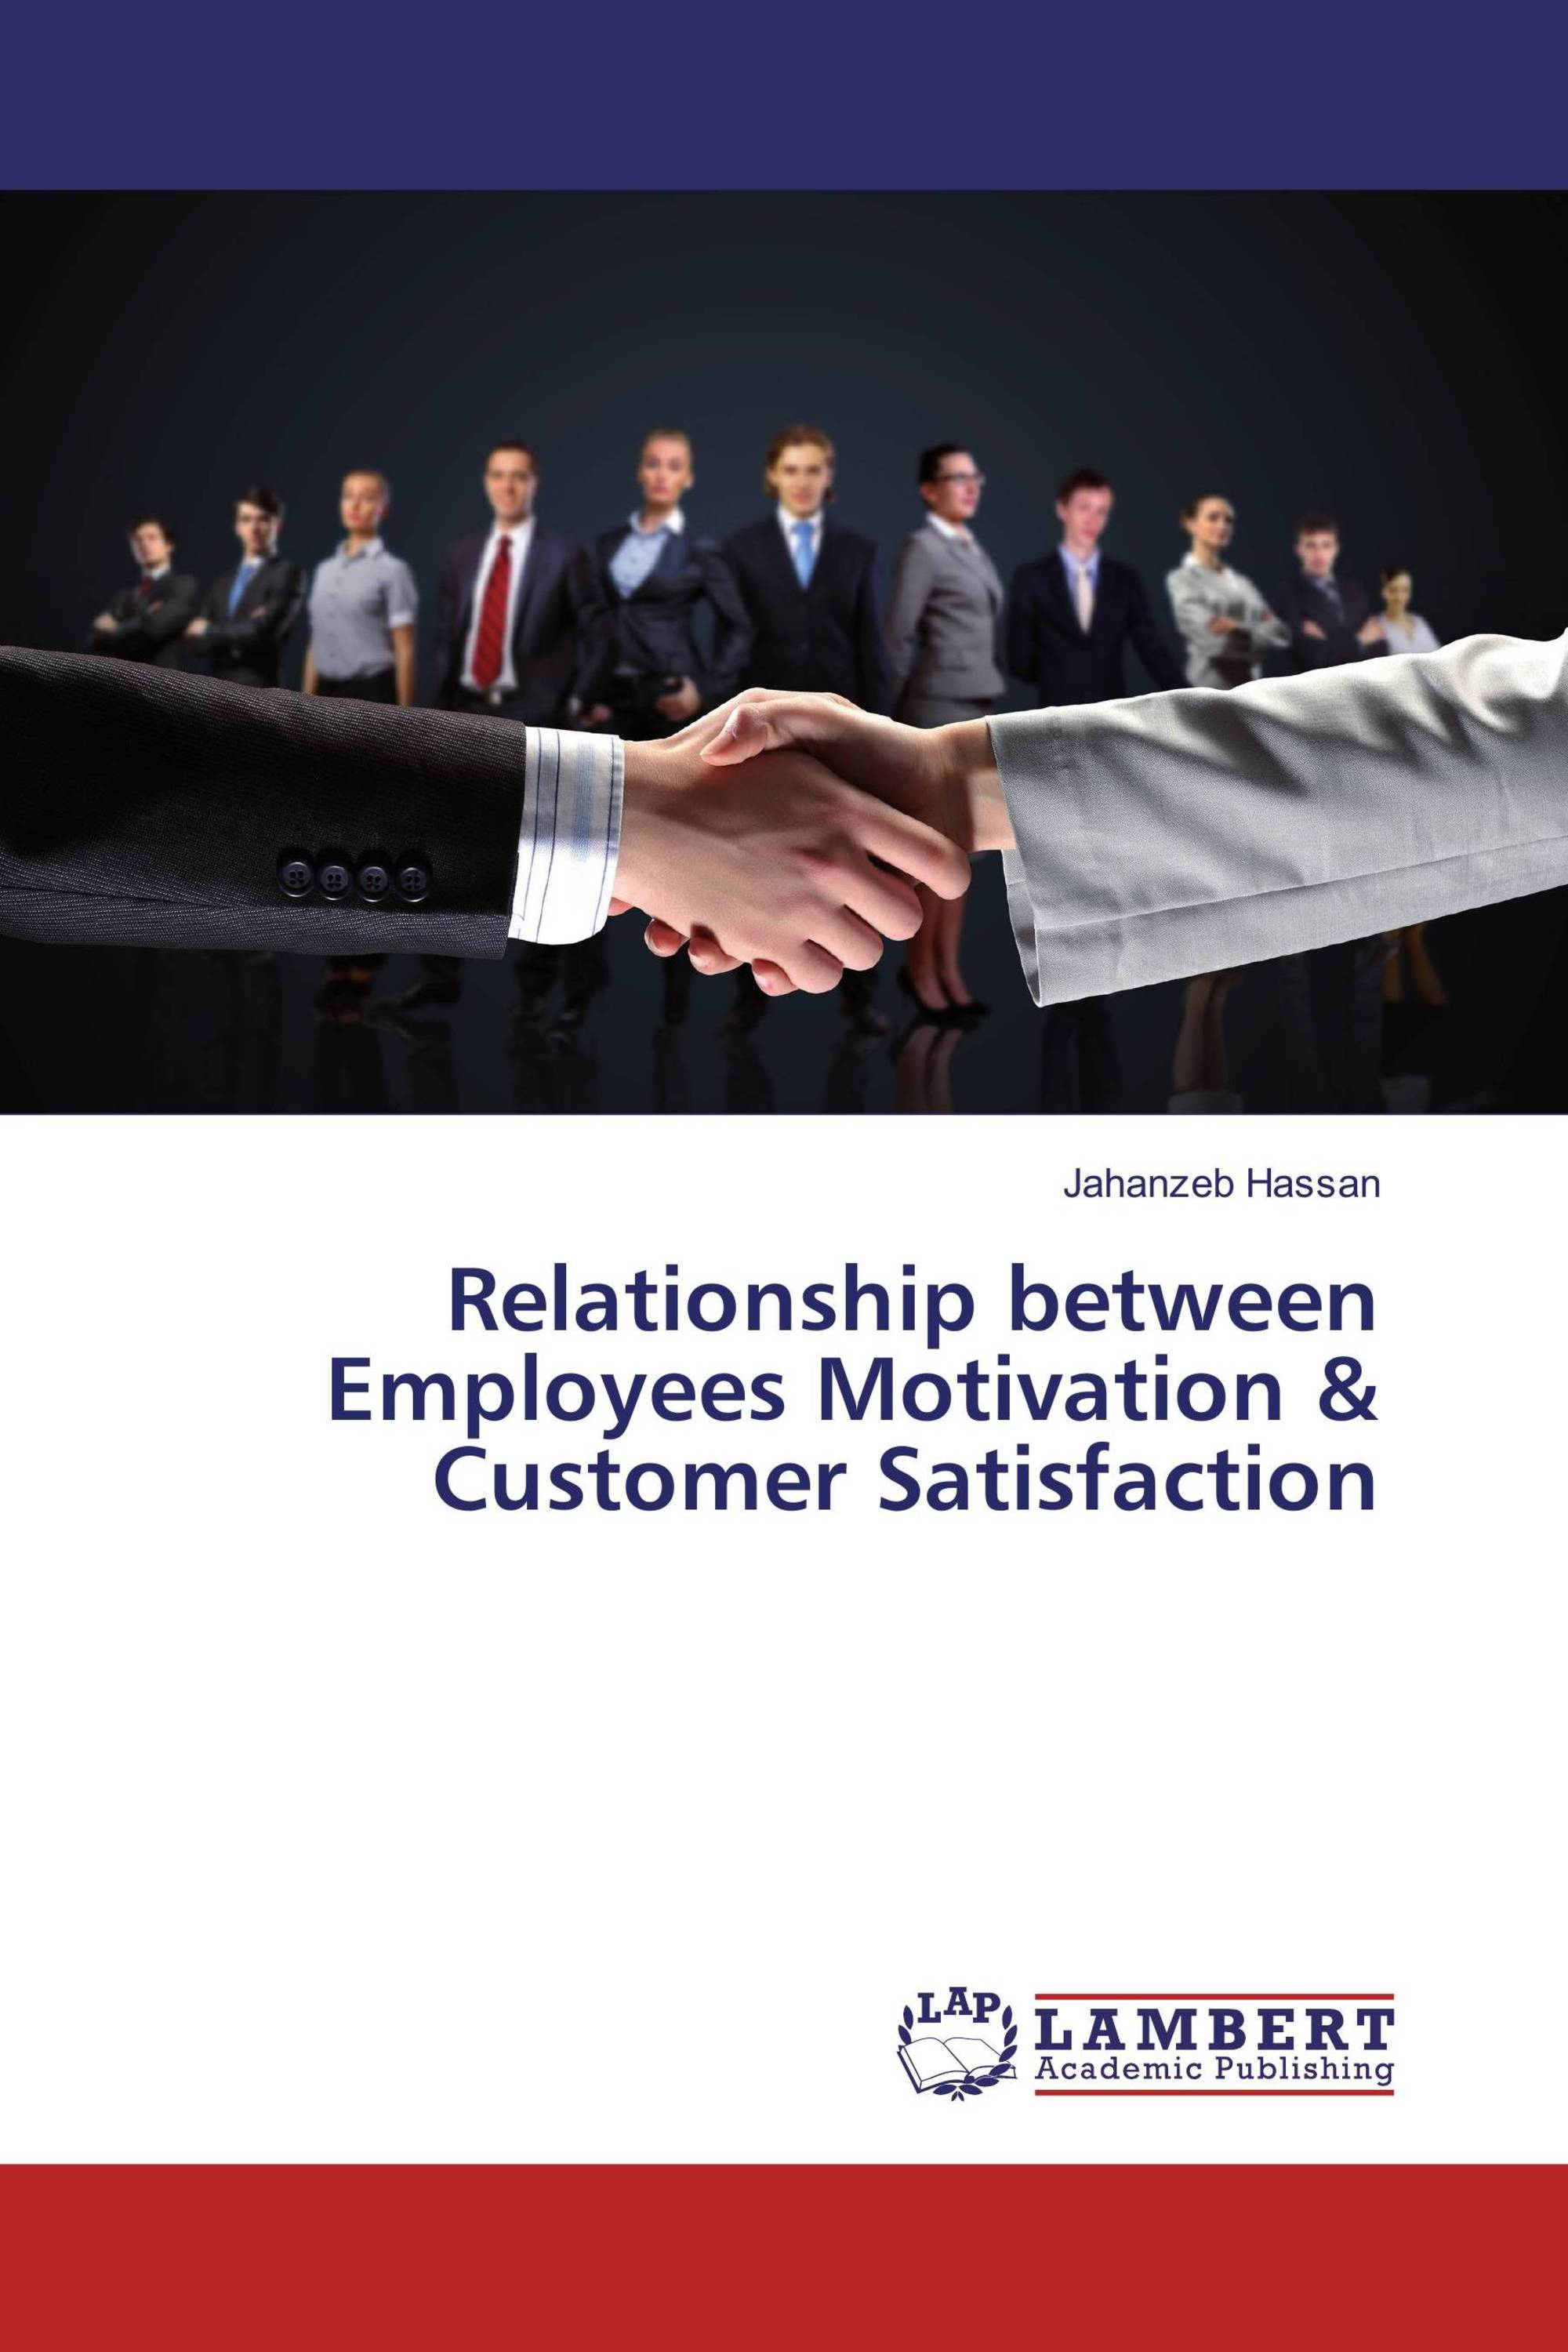 is there a relationship between employees